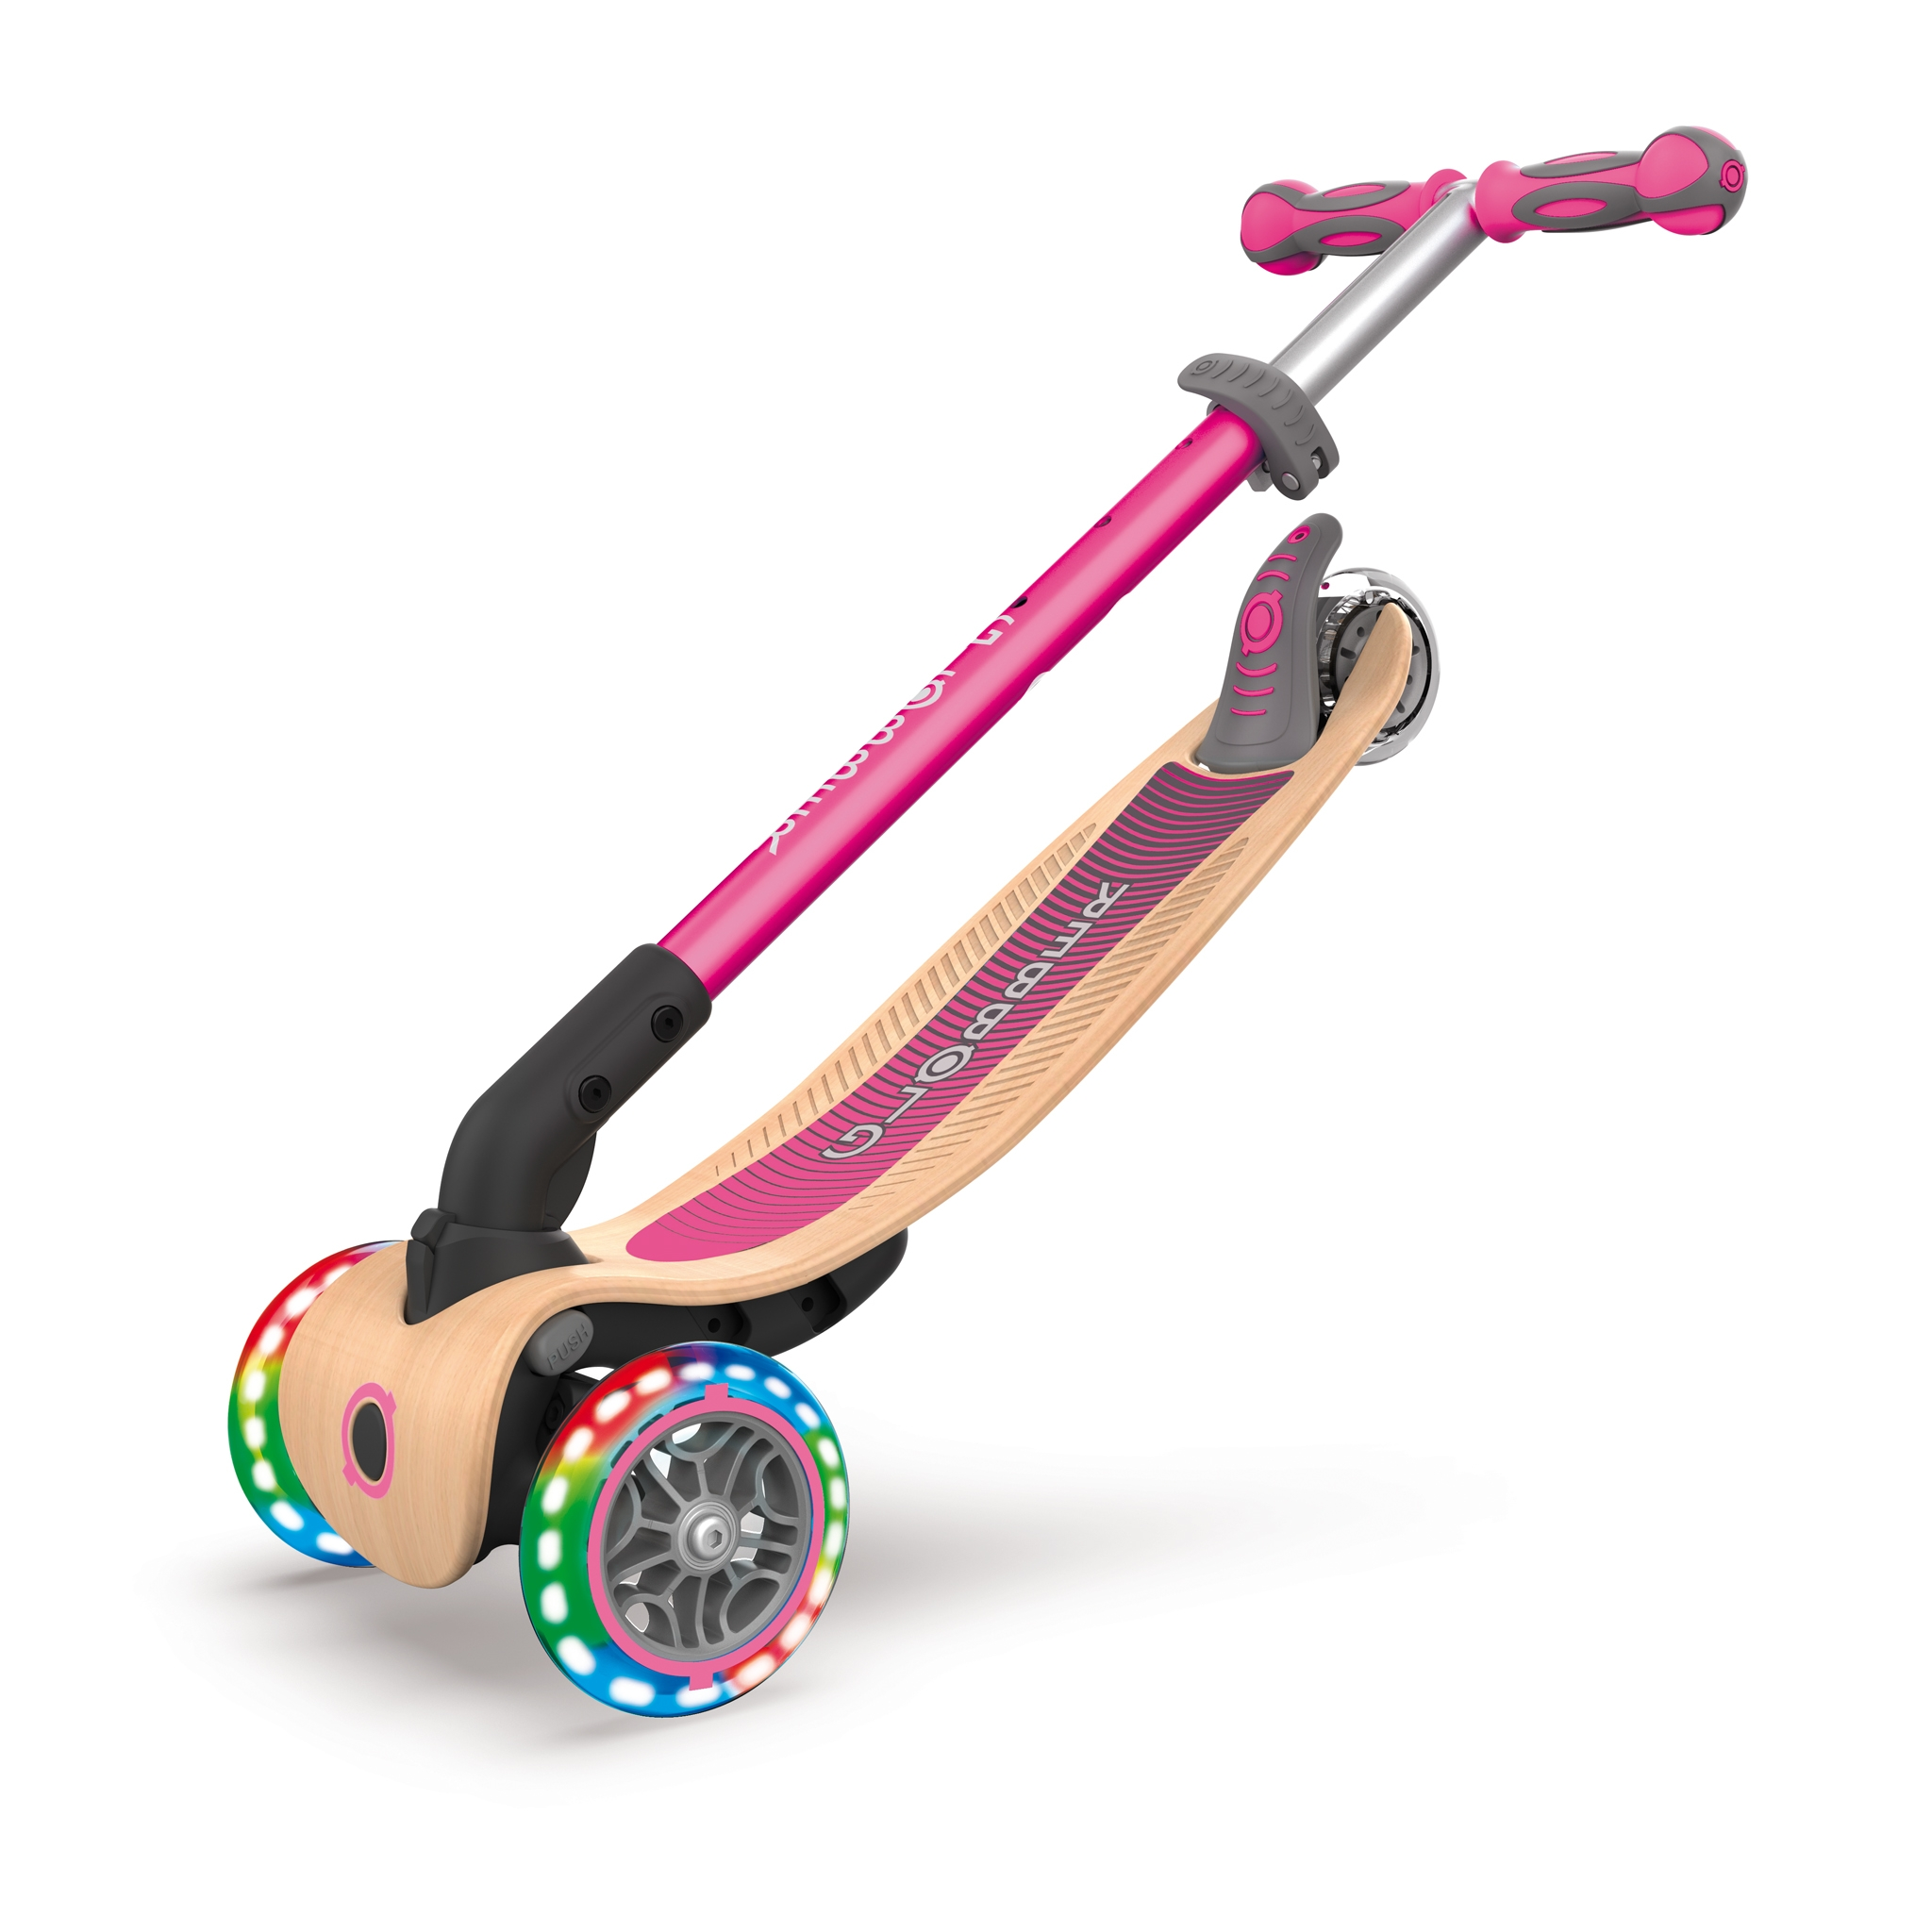 PRIMO-FOLDABLE-WOOD-LIGHTS-3-wheel-foldable-light-up-scooter-with-7-ply-wooden-scooter-deck-trolley-mode-compatible_deep-pink